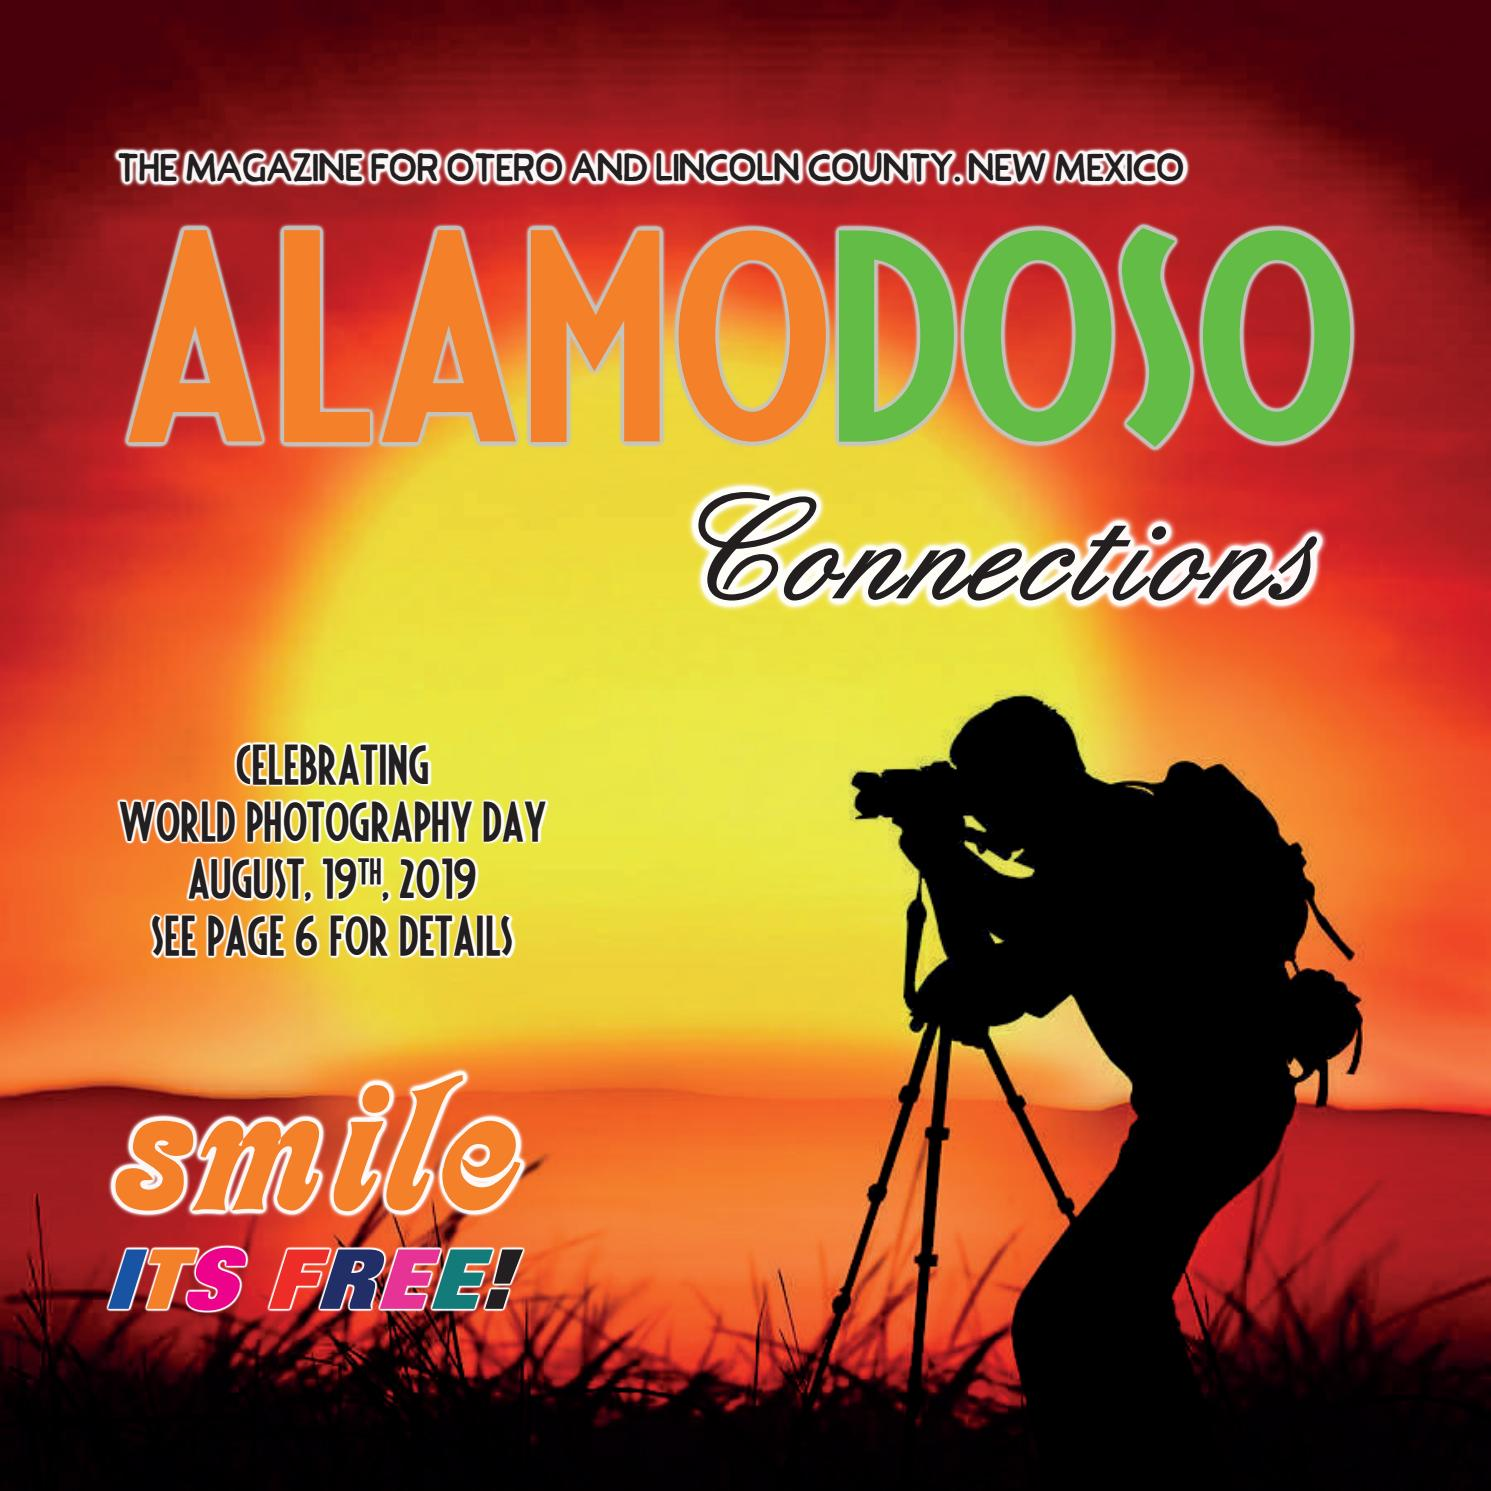 July / August issue of Alamodoso Connections Magazine by